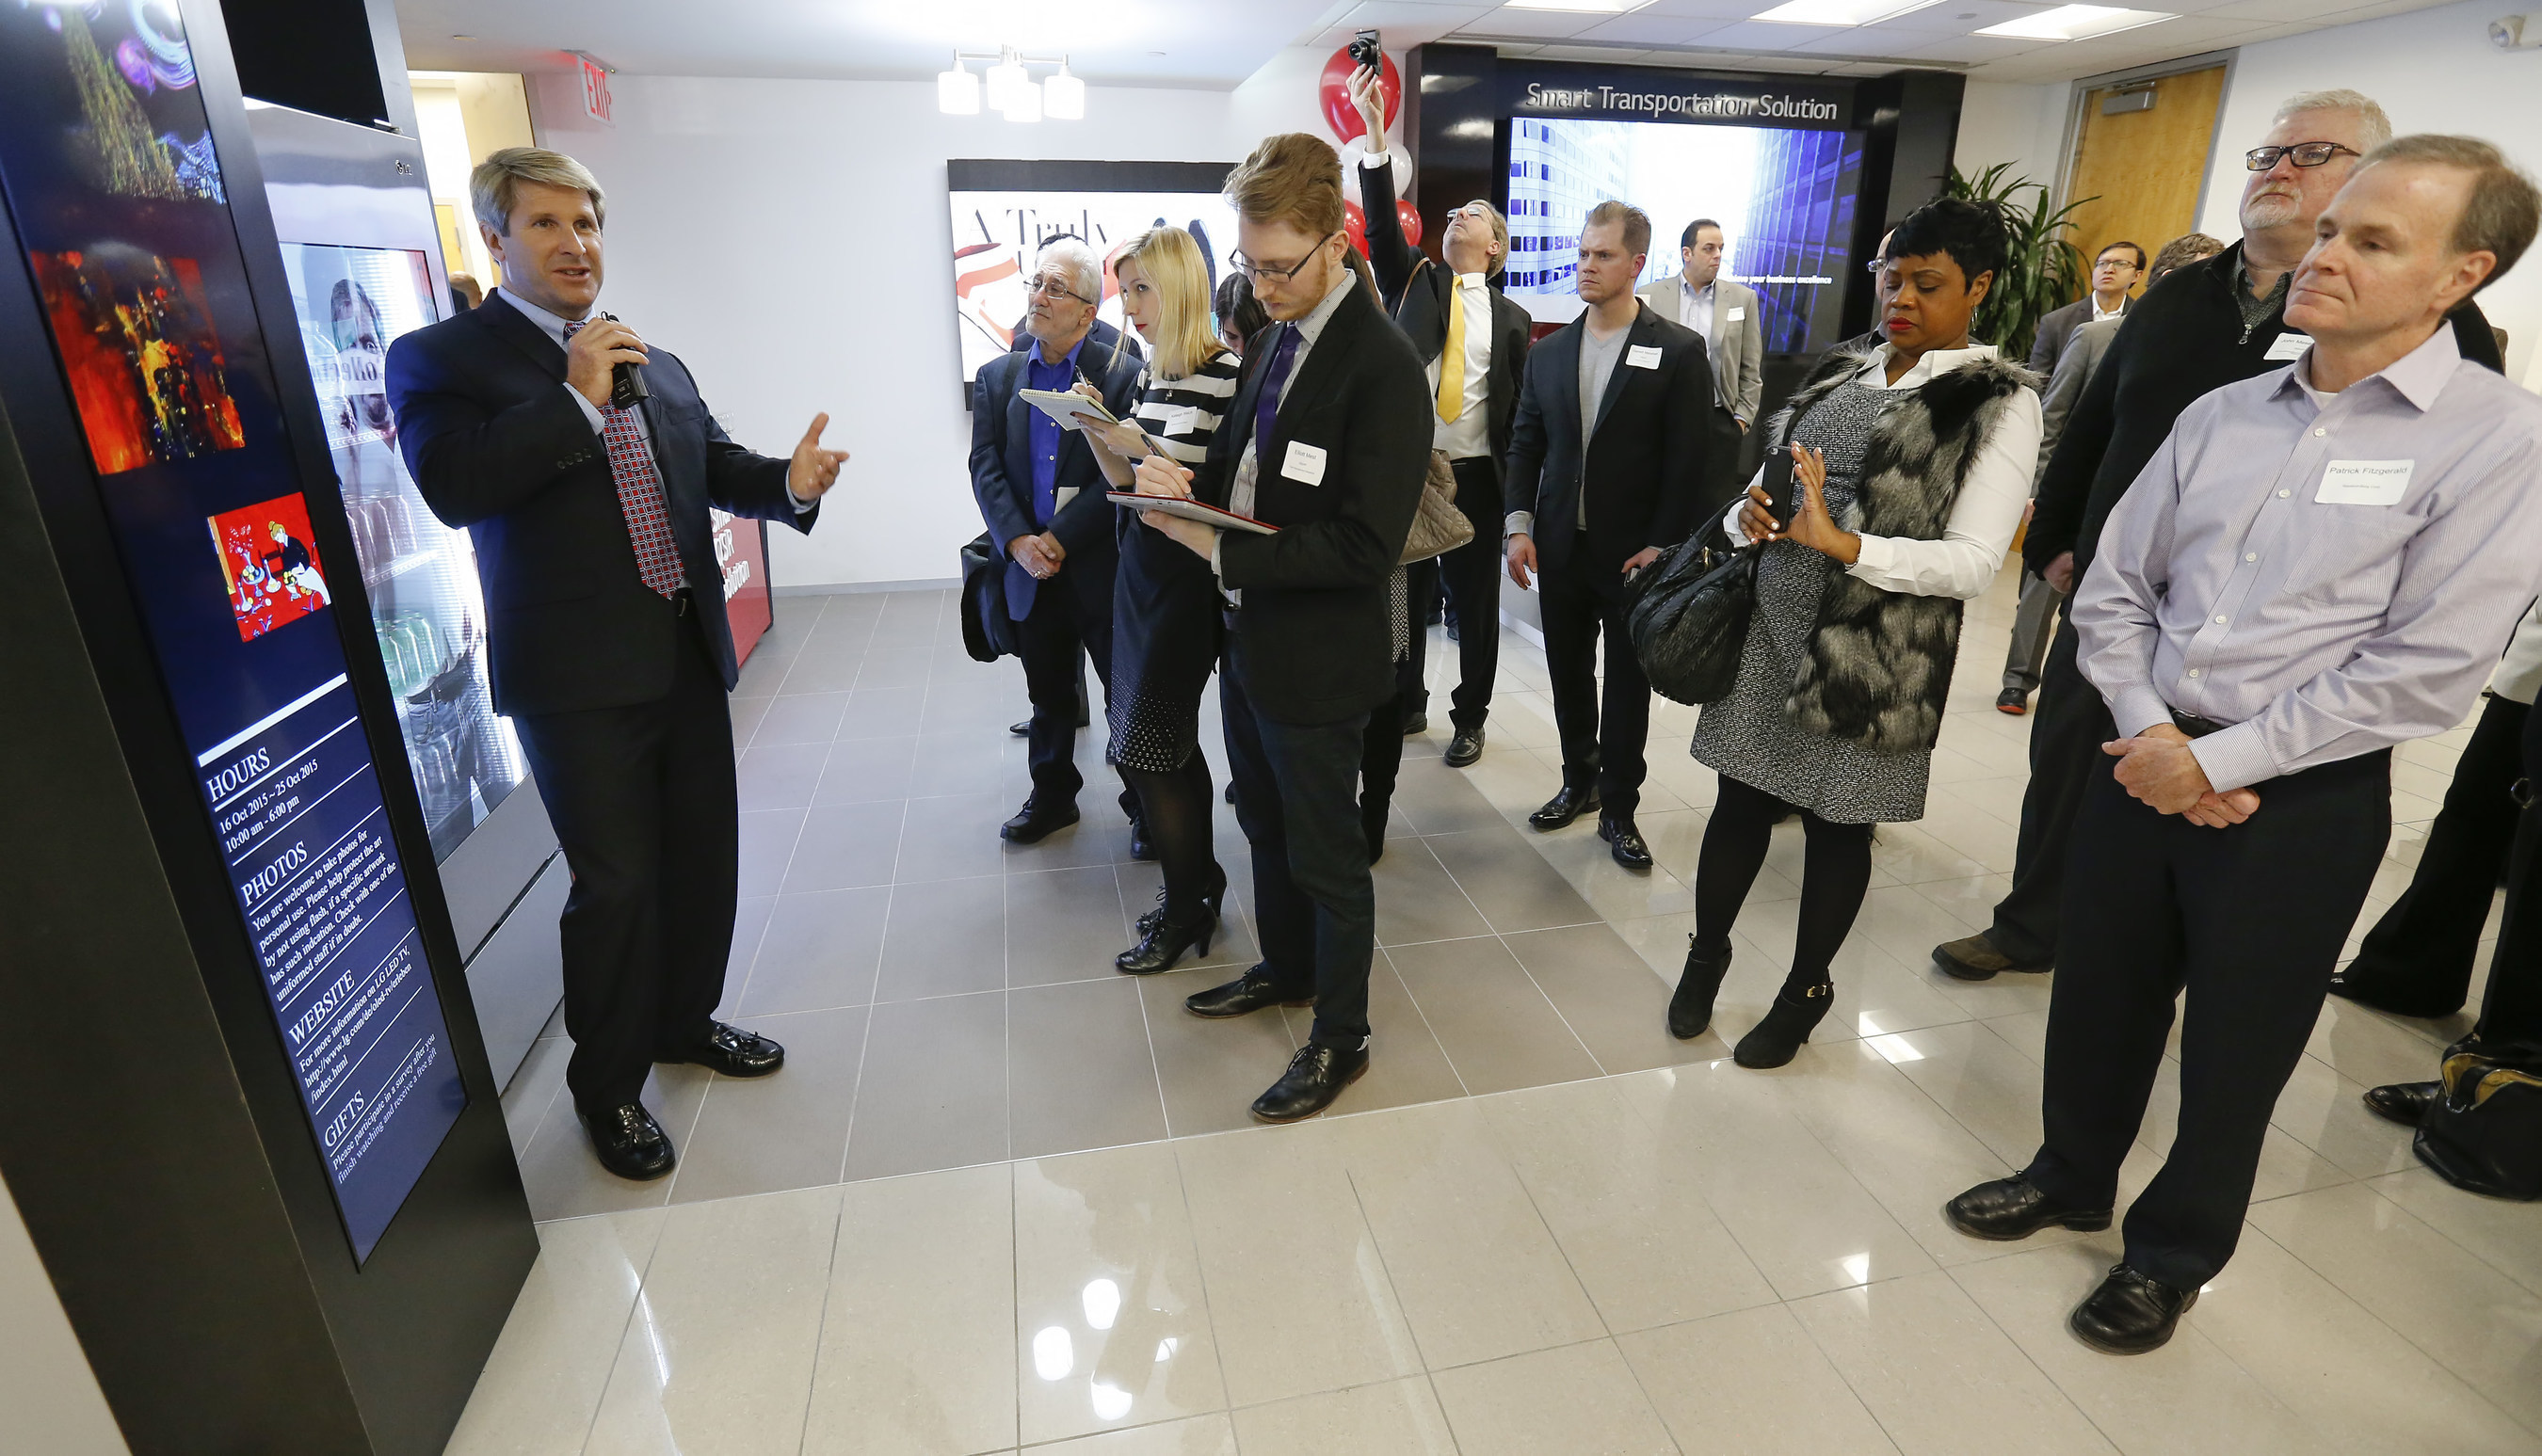 LG Opens Chicago Business Innovation Center, Launches 86-Inch 'Ultra